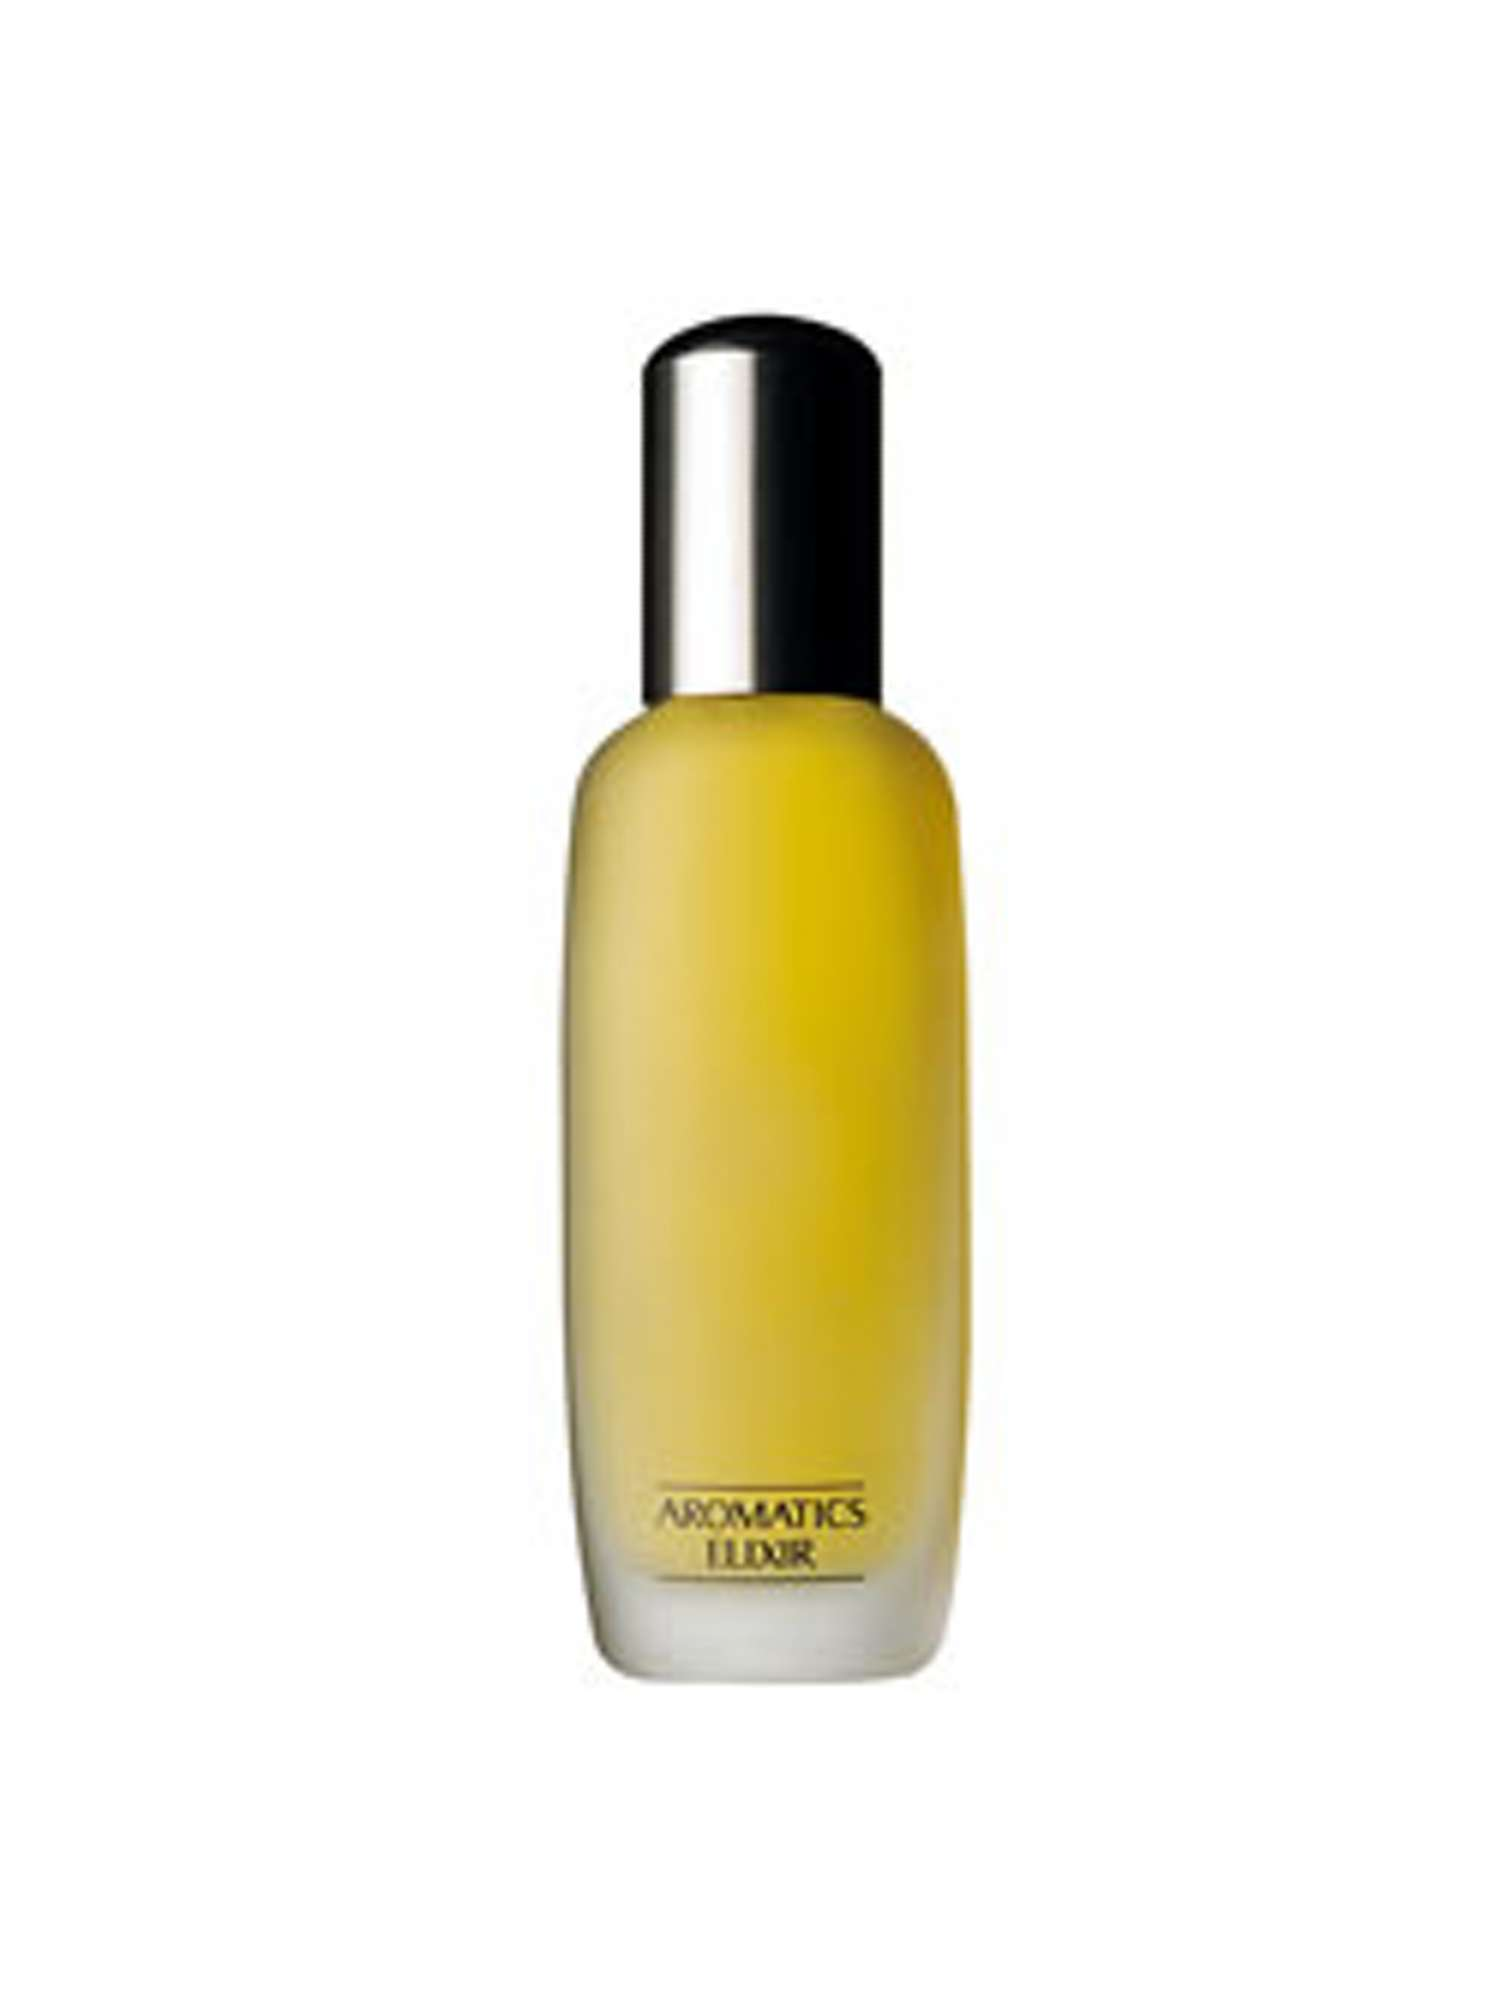 Clinique Perfume Aftershave At House Of Fraser Happy For Women Aromatics Elixir Spray 45ml